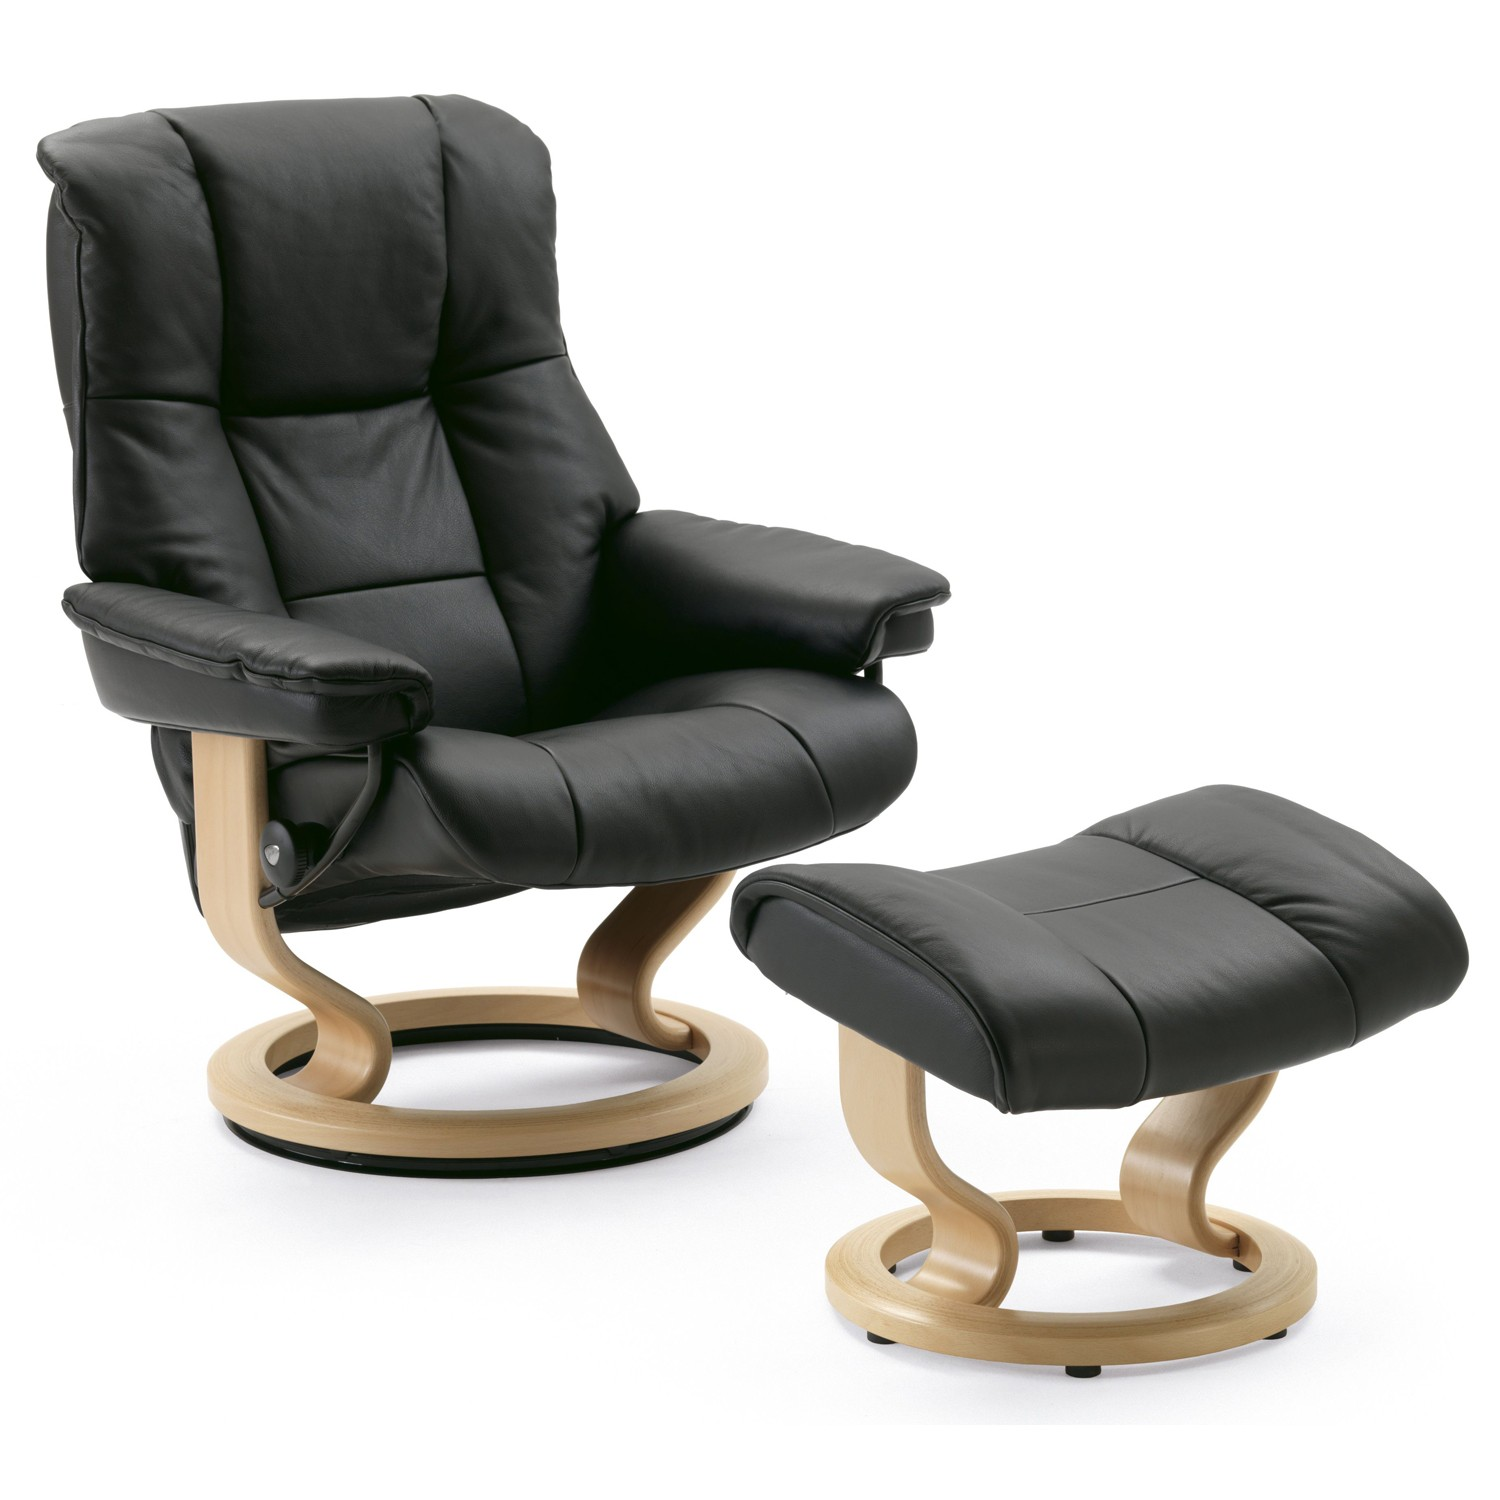 stressless mayfair chair and stool leekes. Black Bedroom Furniture Sets. Home Design Ideas